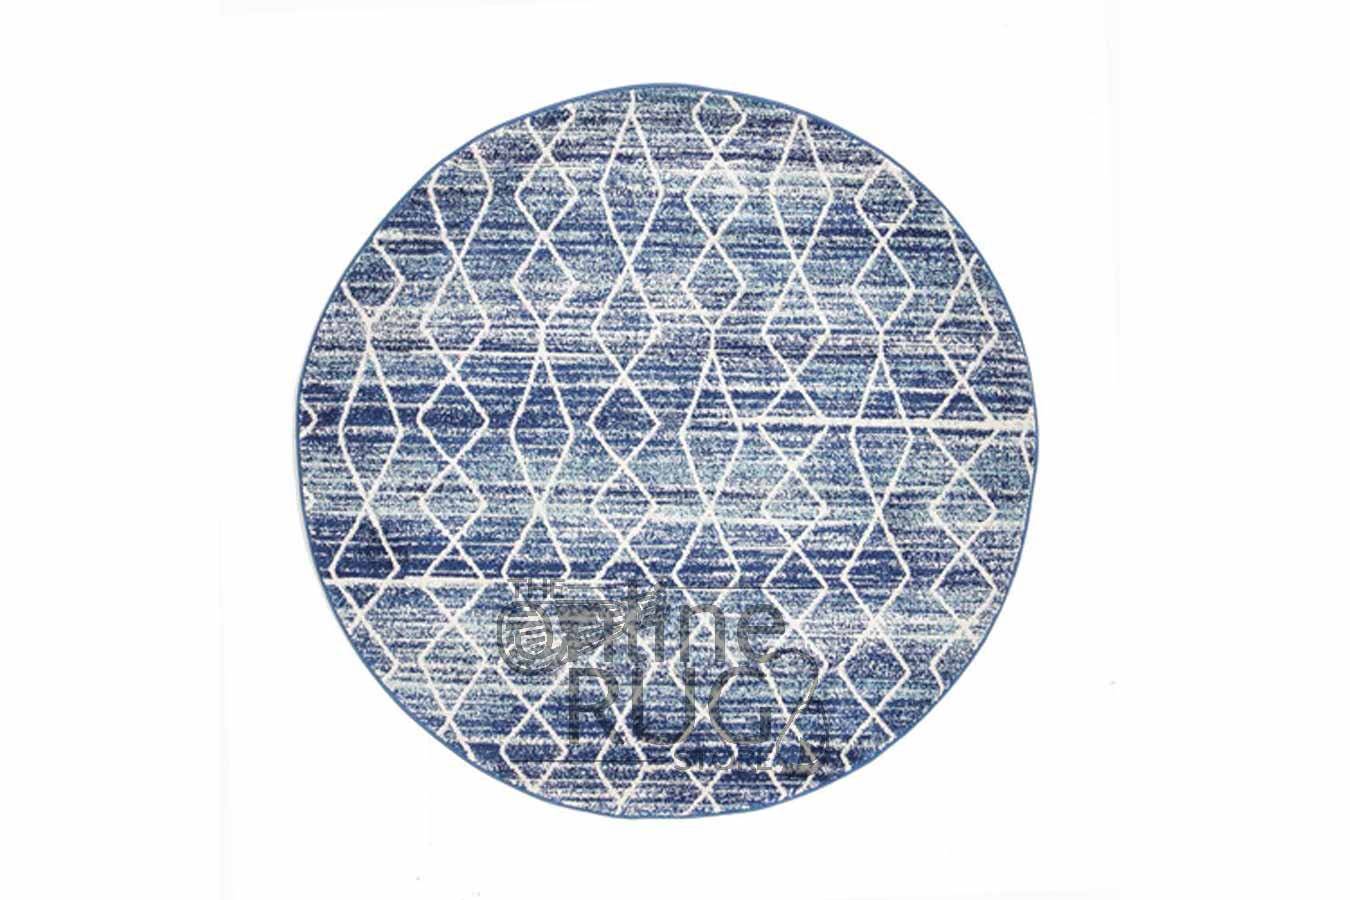 Online Rugs Charcoal Power Loomed Round Rug The Online Rug Store